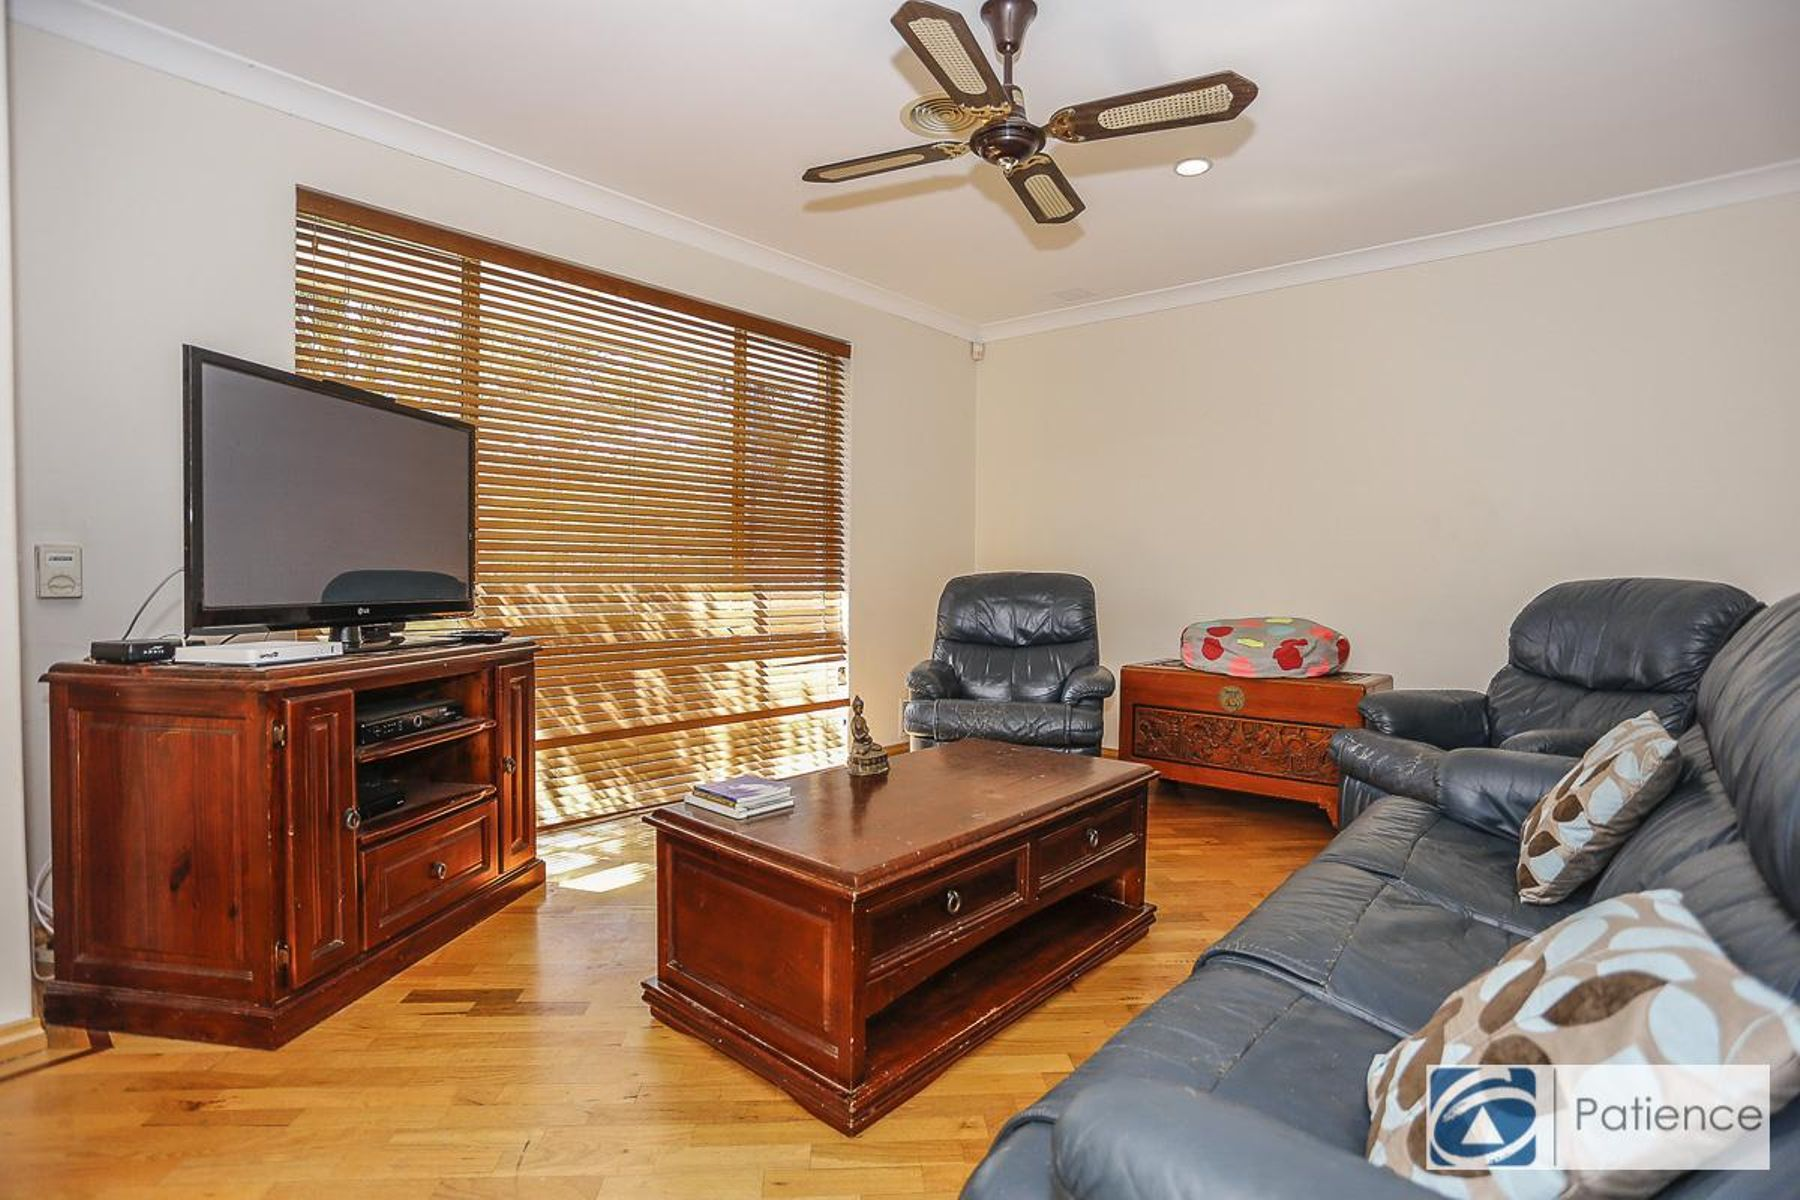 18 Coldlake Ct, Joondalup WA 6027, Australia, House for Sale - First on home countertops, home health, home art collection, home furnishings, home bed, home decor, home appliances, home design, home couch, home upholstery fabric, home sofa sleepers, home windows, home cell phones, home walls, home roof systems, home garden ideas, home garden trees, home mirrors, home funeral services, home kitchen,